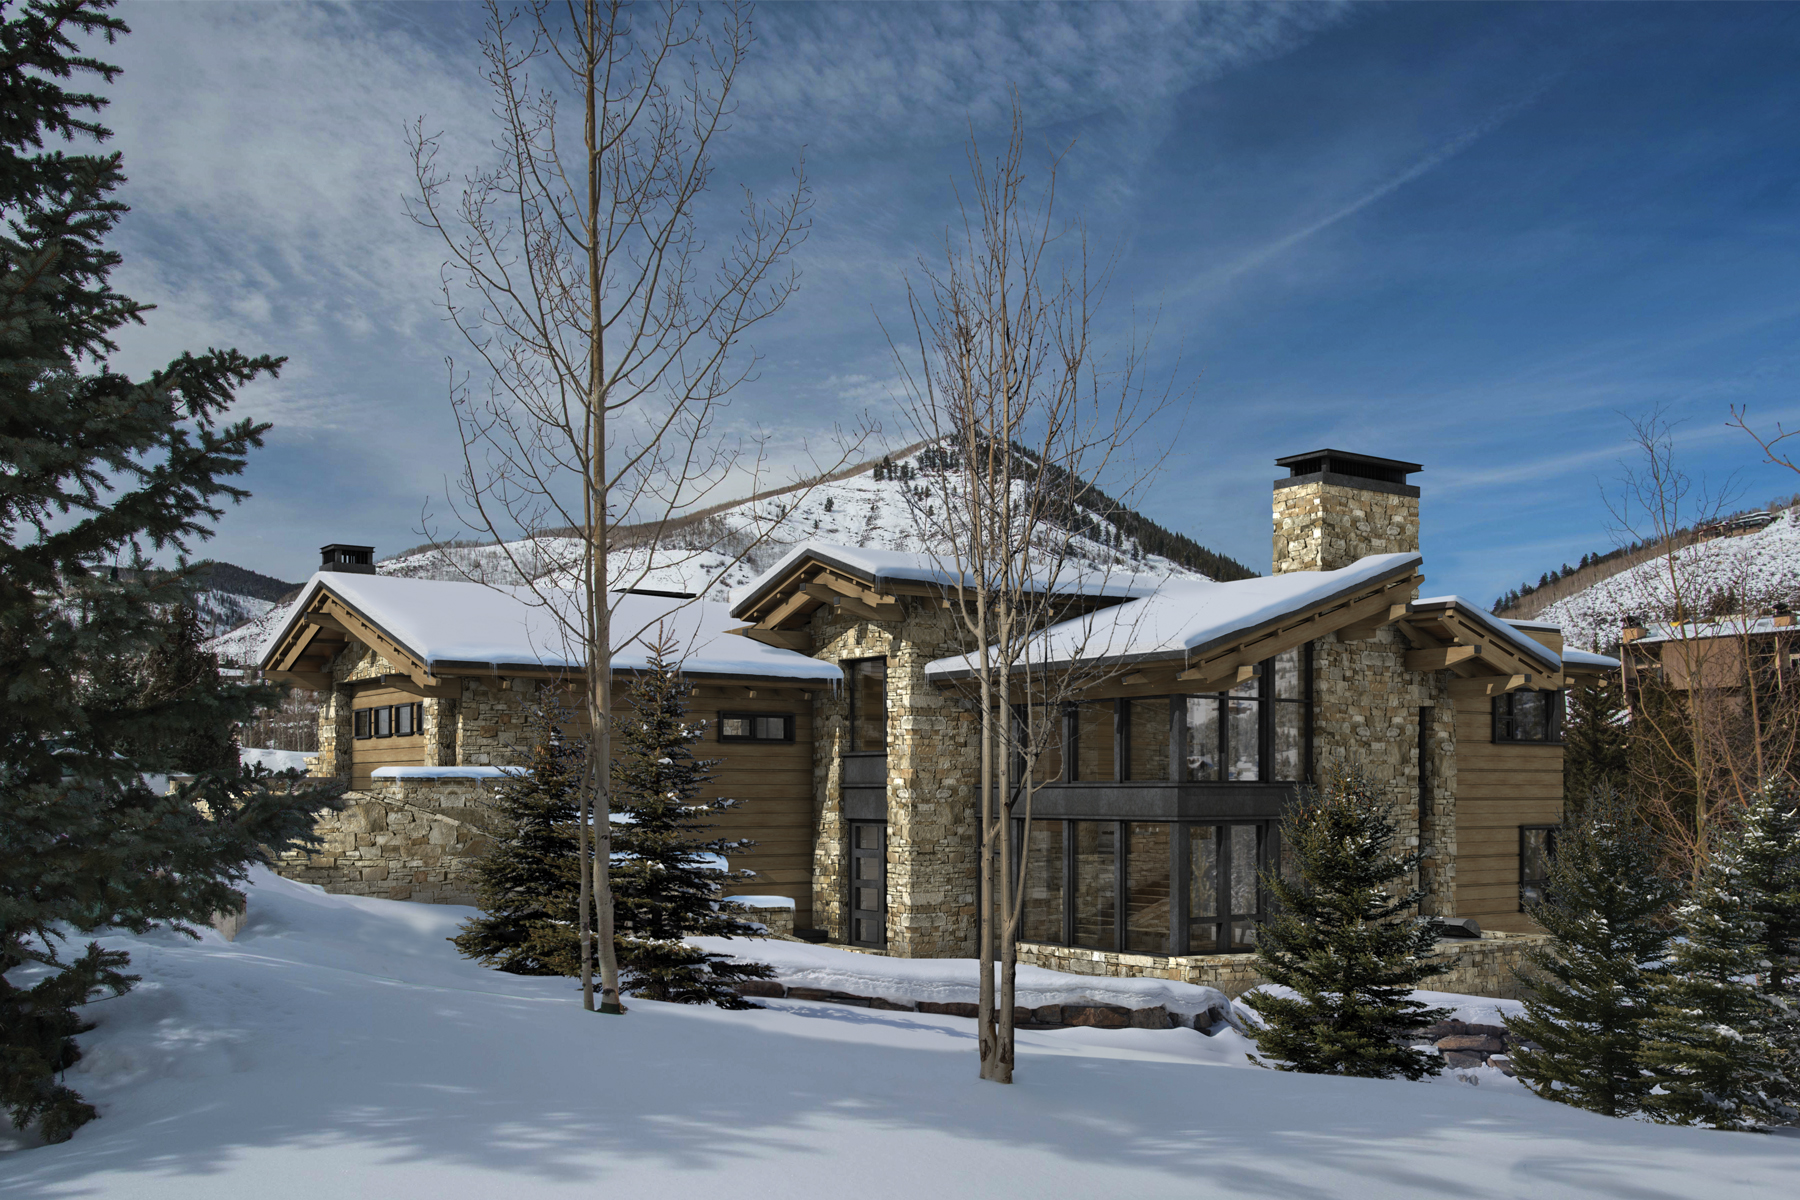 Casa Unifamiliar por un Venta en New Construction on Forest Road 645 Forest Road Vail, Colorado, 81657 Estados Unidos